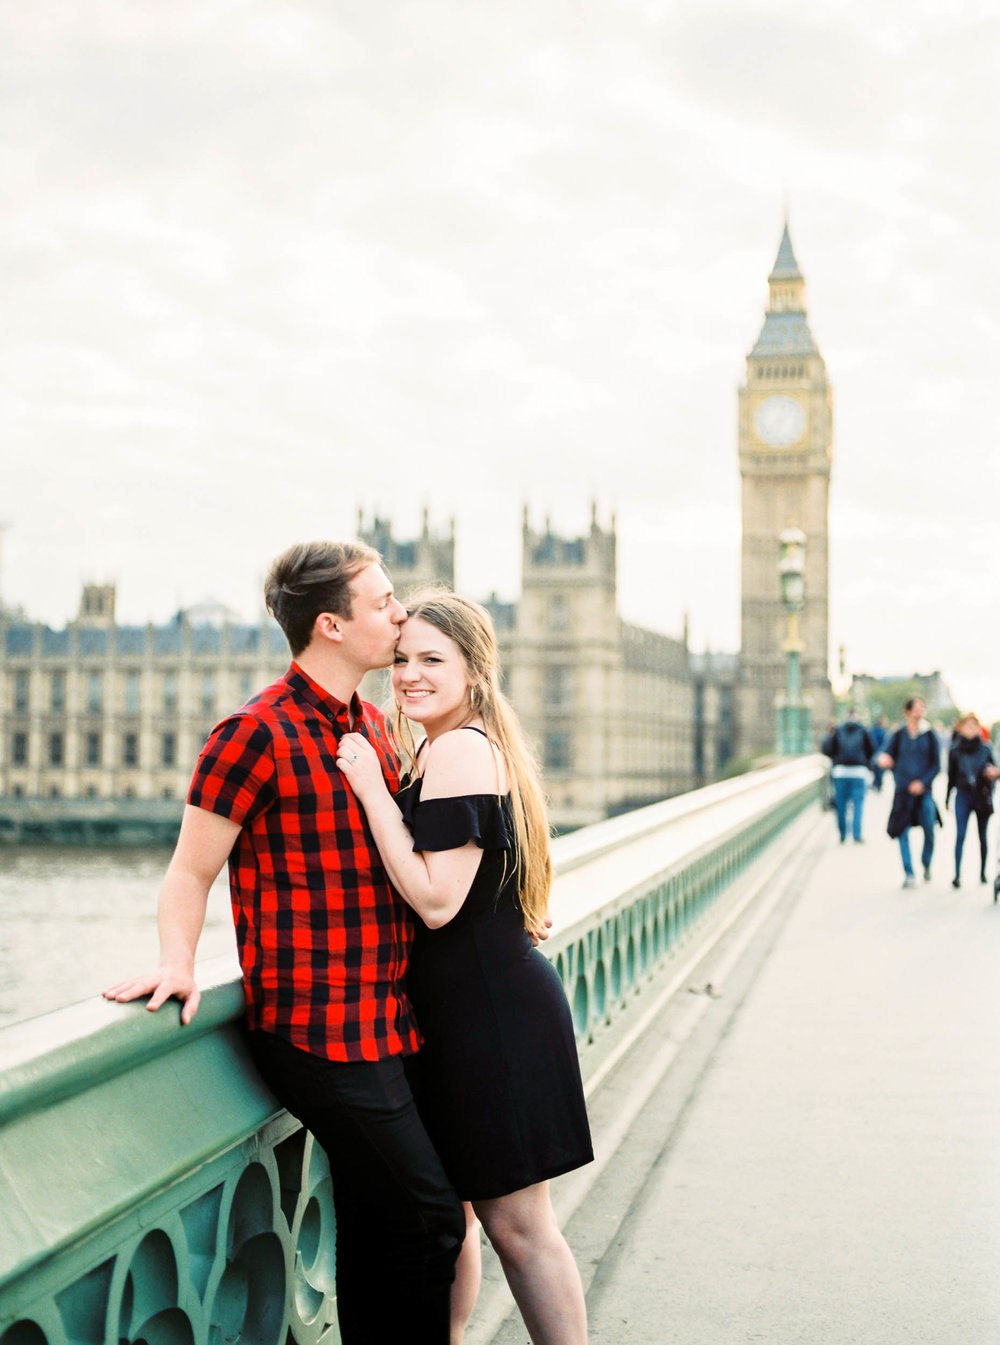 Amy O'Boyle Photography- Destination & UK Fine Art Film Wedding Photographer- London Proposal- Westminster Bridge Big Ben Engagement Shoot-6.jpg